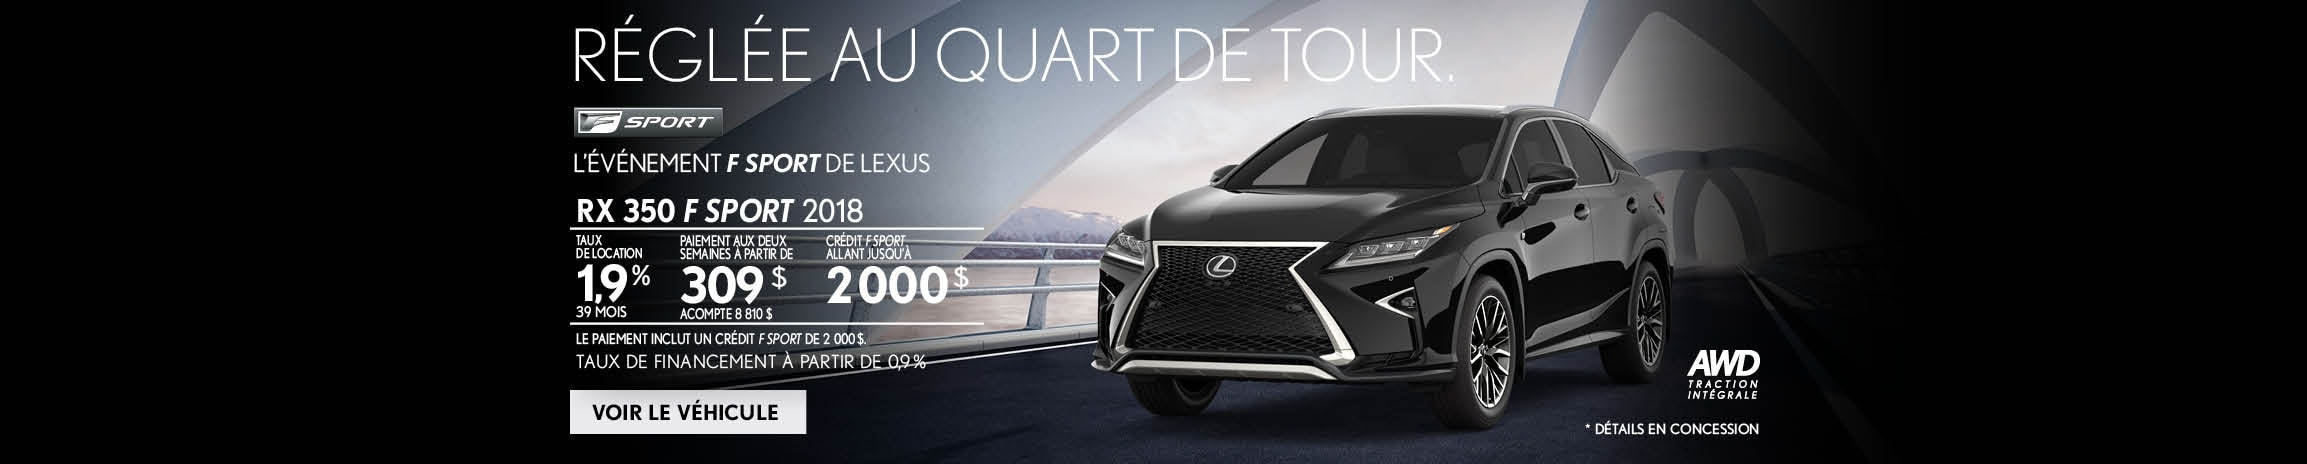 heights arlington welcome in dealership and new of used dealers lexus to